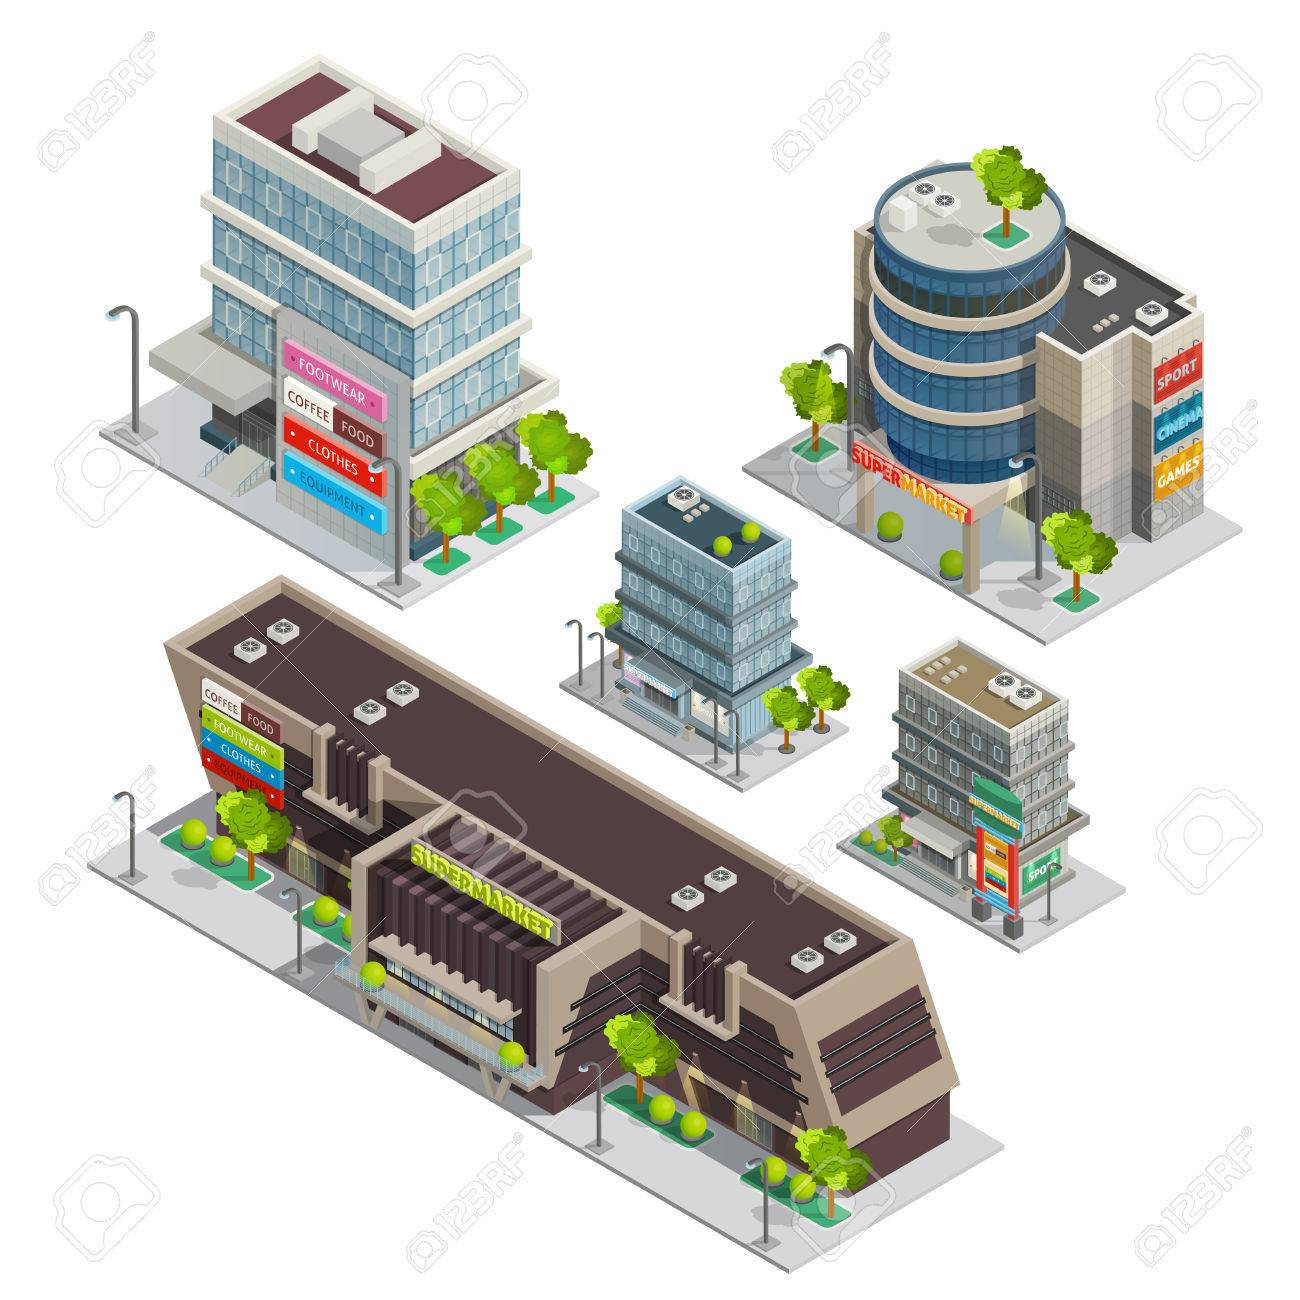 Modern city shopping center complex isometric composition with supermarket and department store buildings abstract vector illustration - 55219770